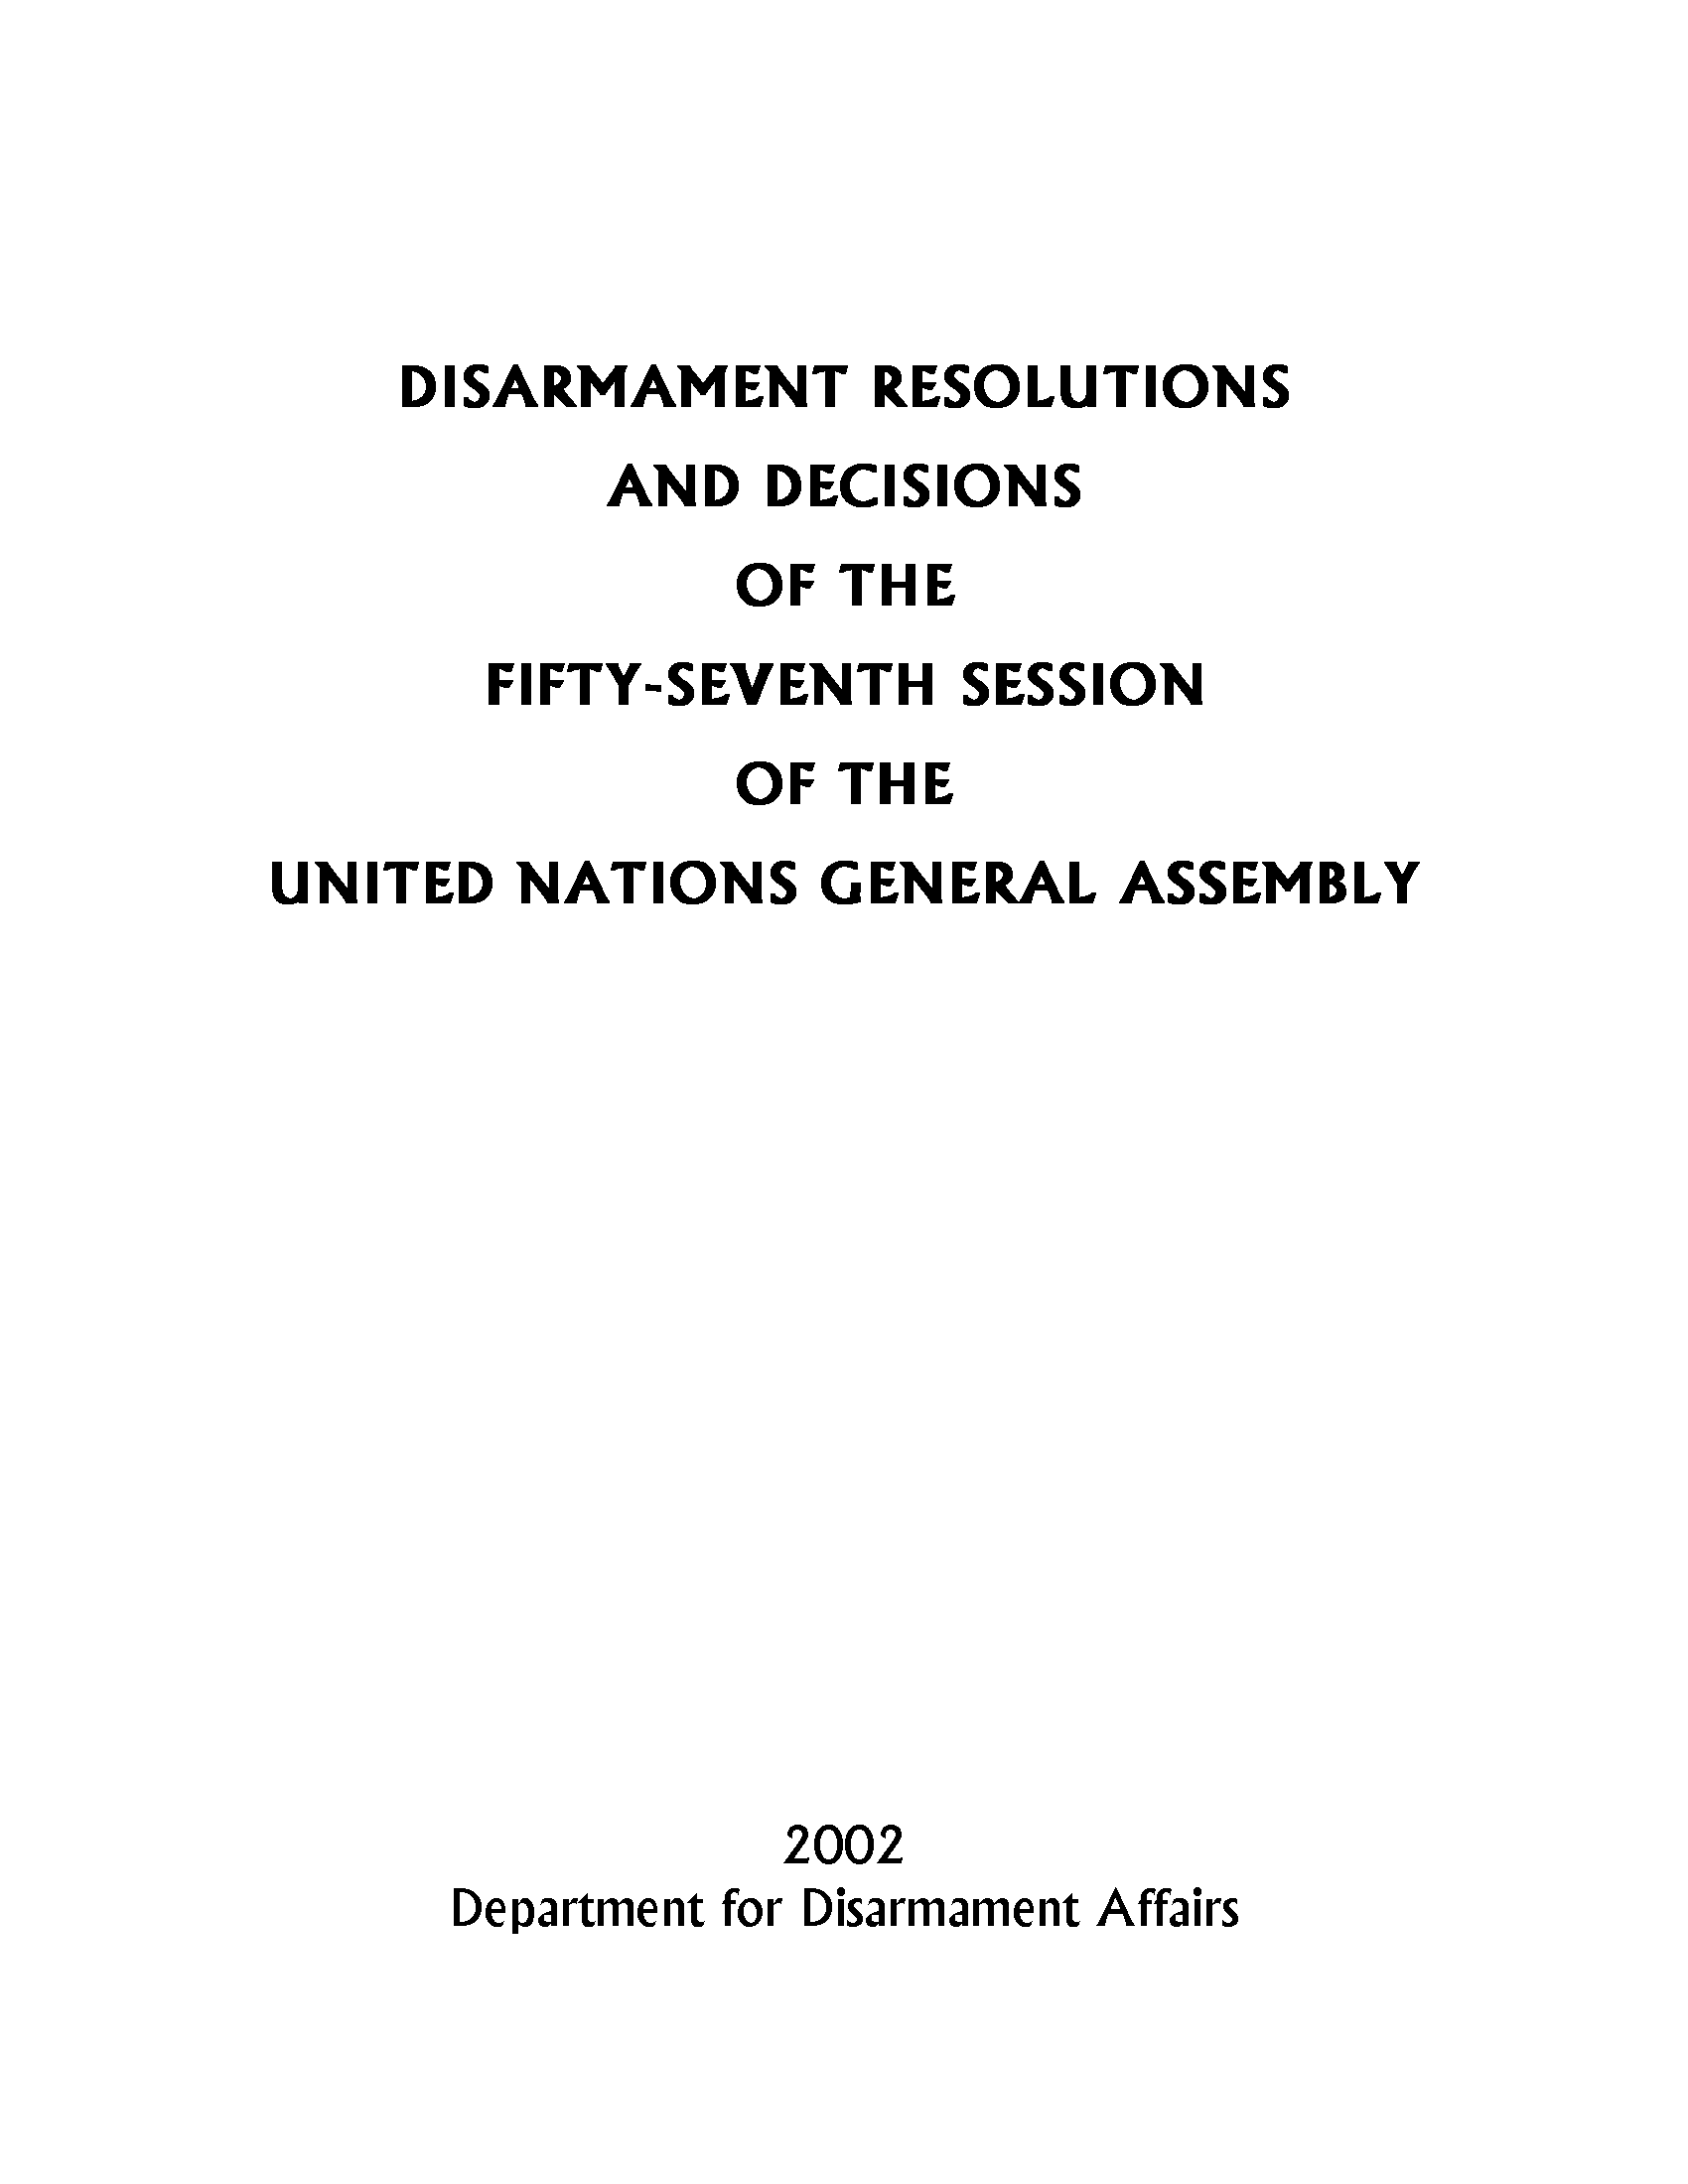 Disarmament Resolutions and Decisions of the Fifty-seventh Session of the United Nations General Assembly, 2002